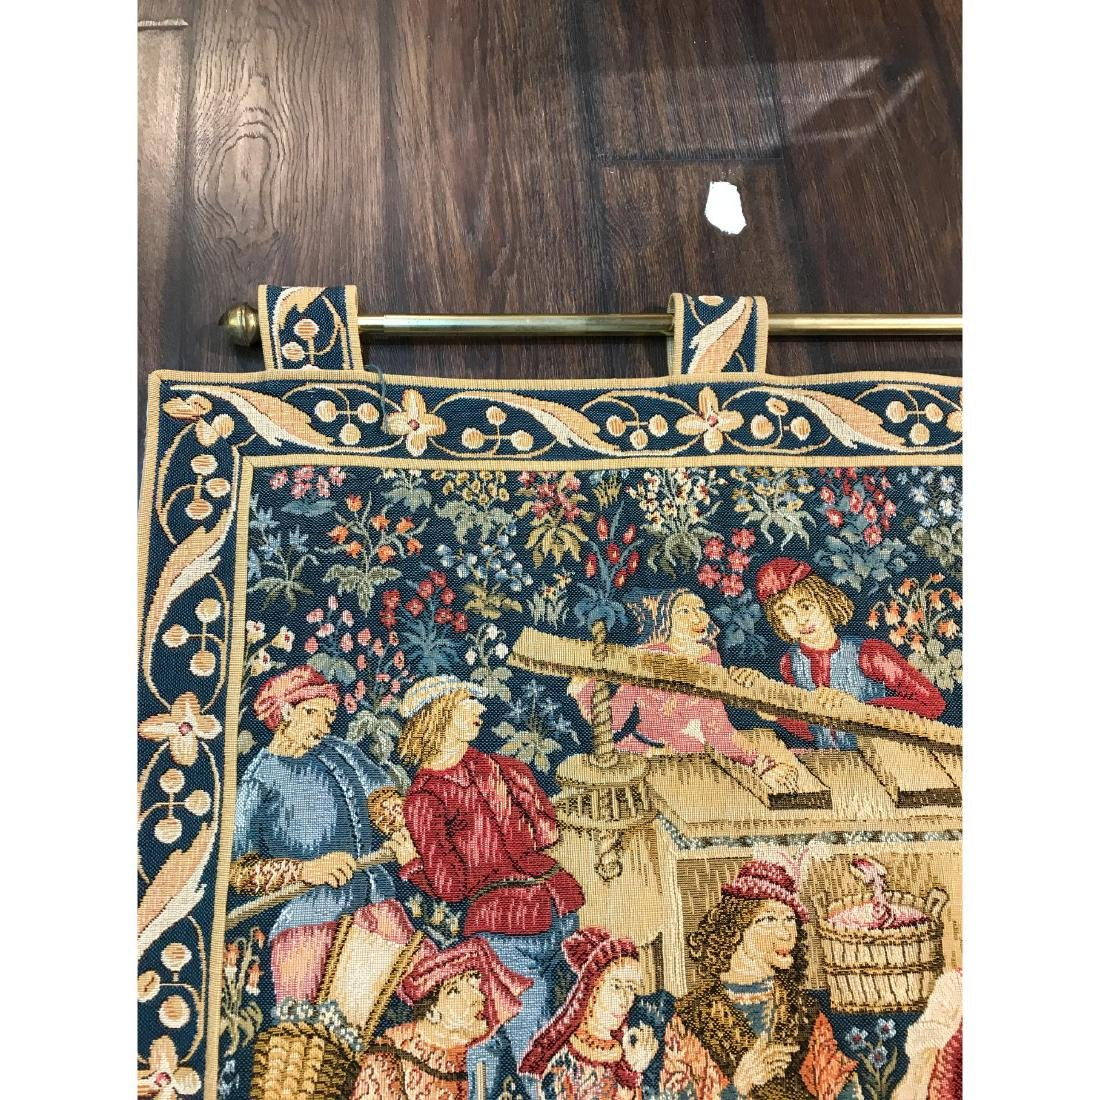 Tapestry with Scene of Medieval Wine Making w/ Rod - 4